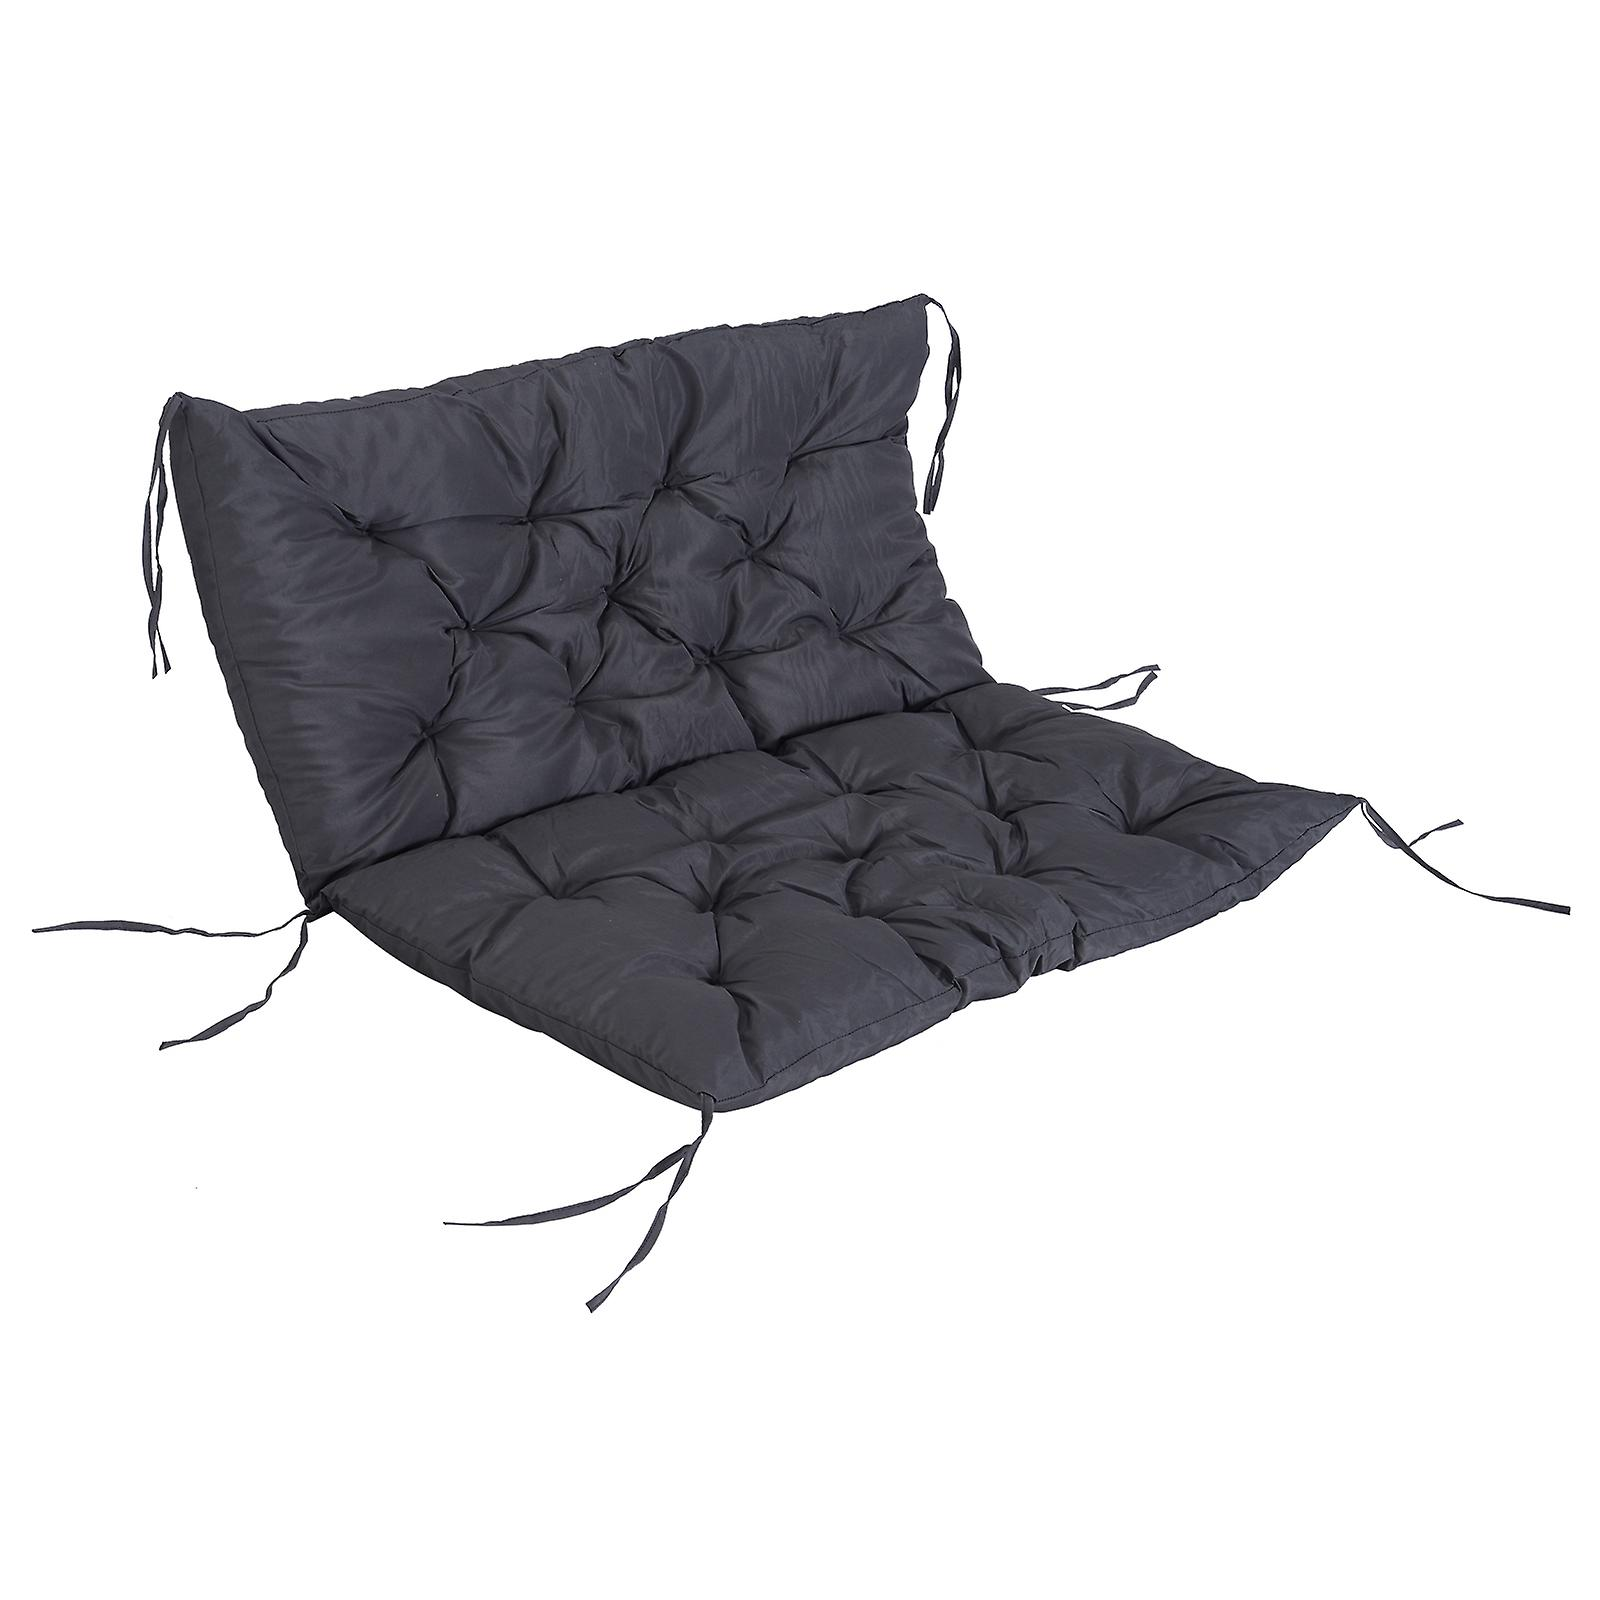 Superb Outsunny Outdoor Garden Patio Bench Swing Chair Replacement Seat Pad Cushions Backrest 100 X 98 Cm 2 Seater Machost Co Dining Chair Design Ideas Machostcouk